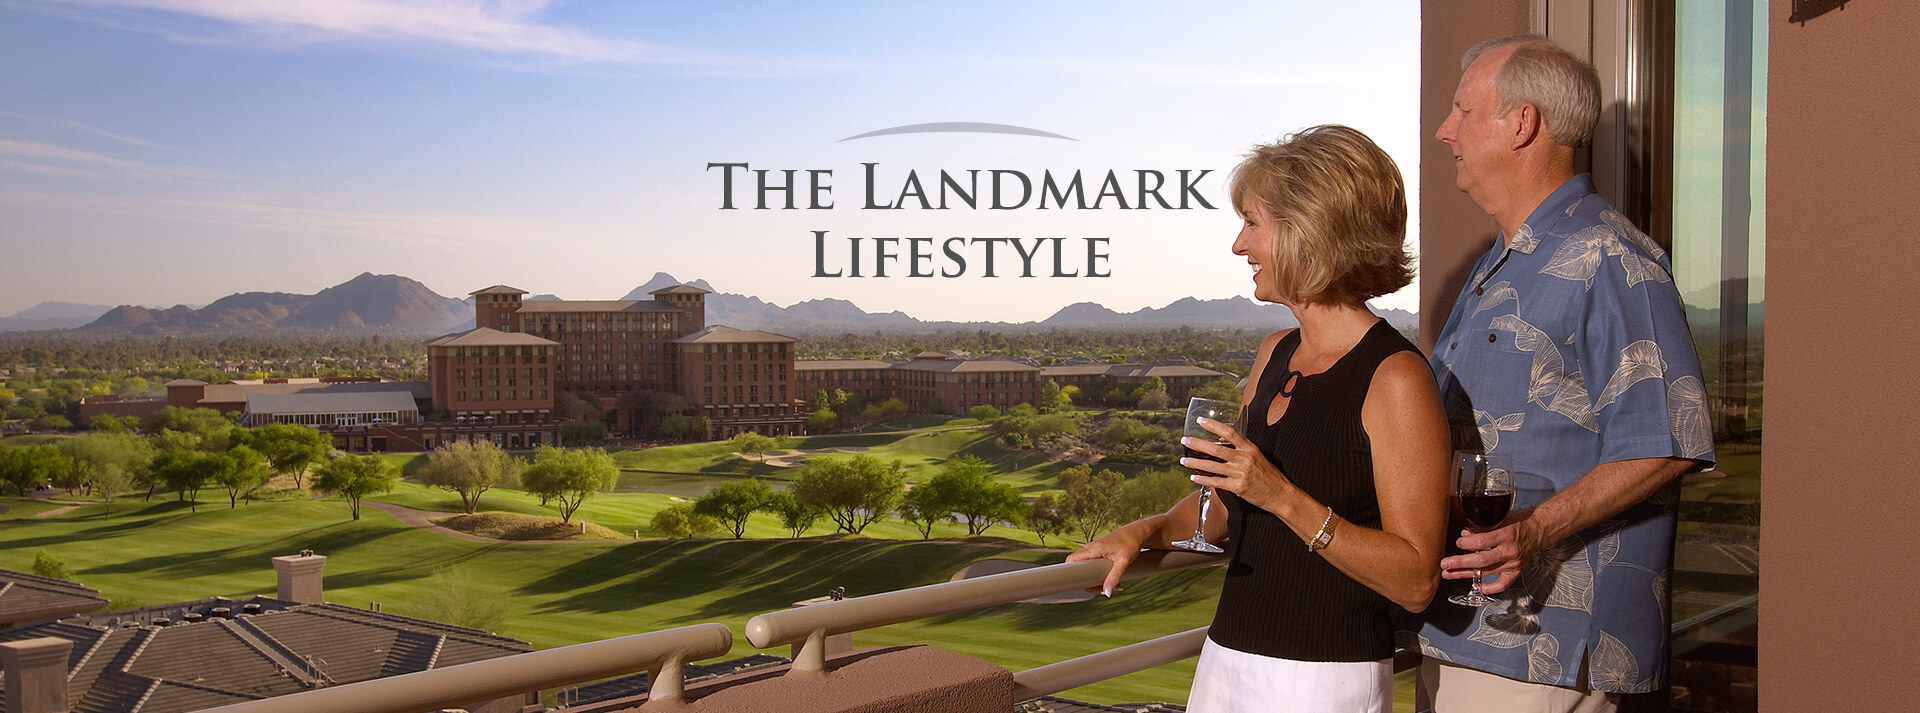 The Landmark Lifestyle